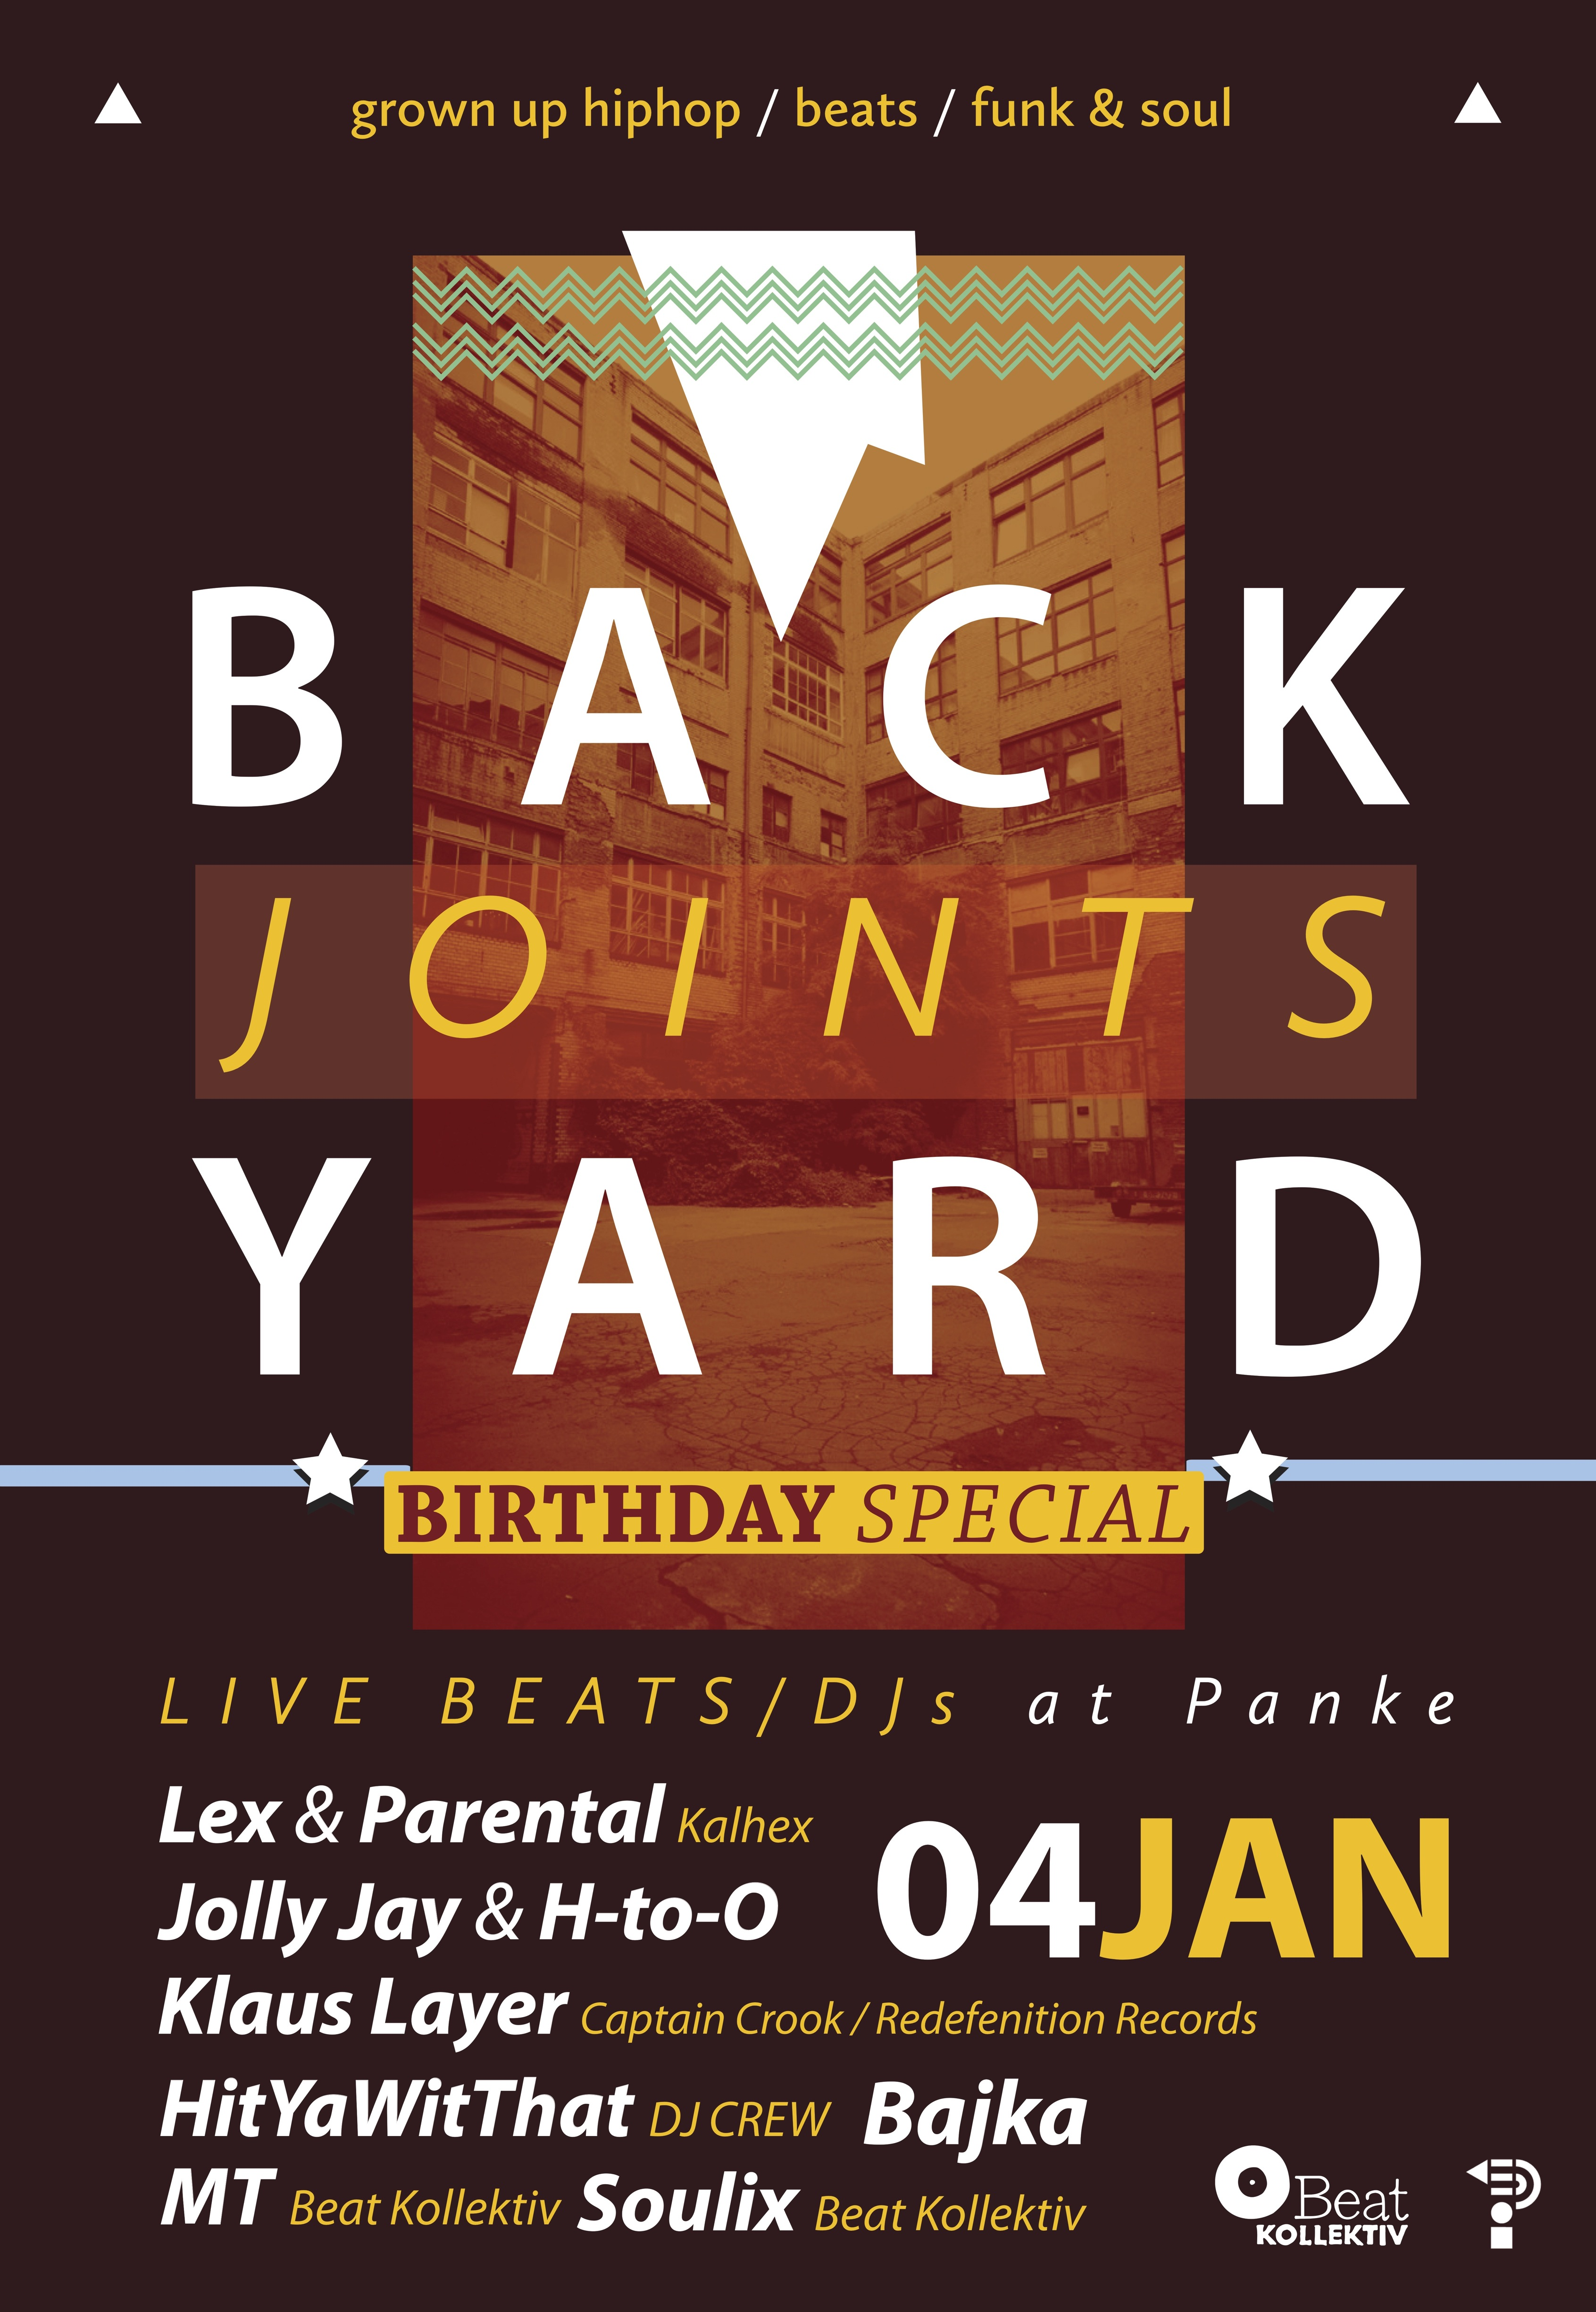 BACKYARD JOINTS – BIRTHDAY SPECIAL